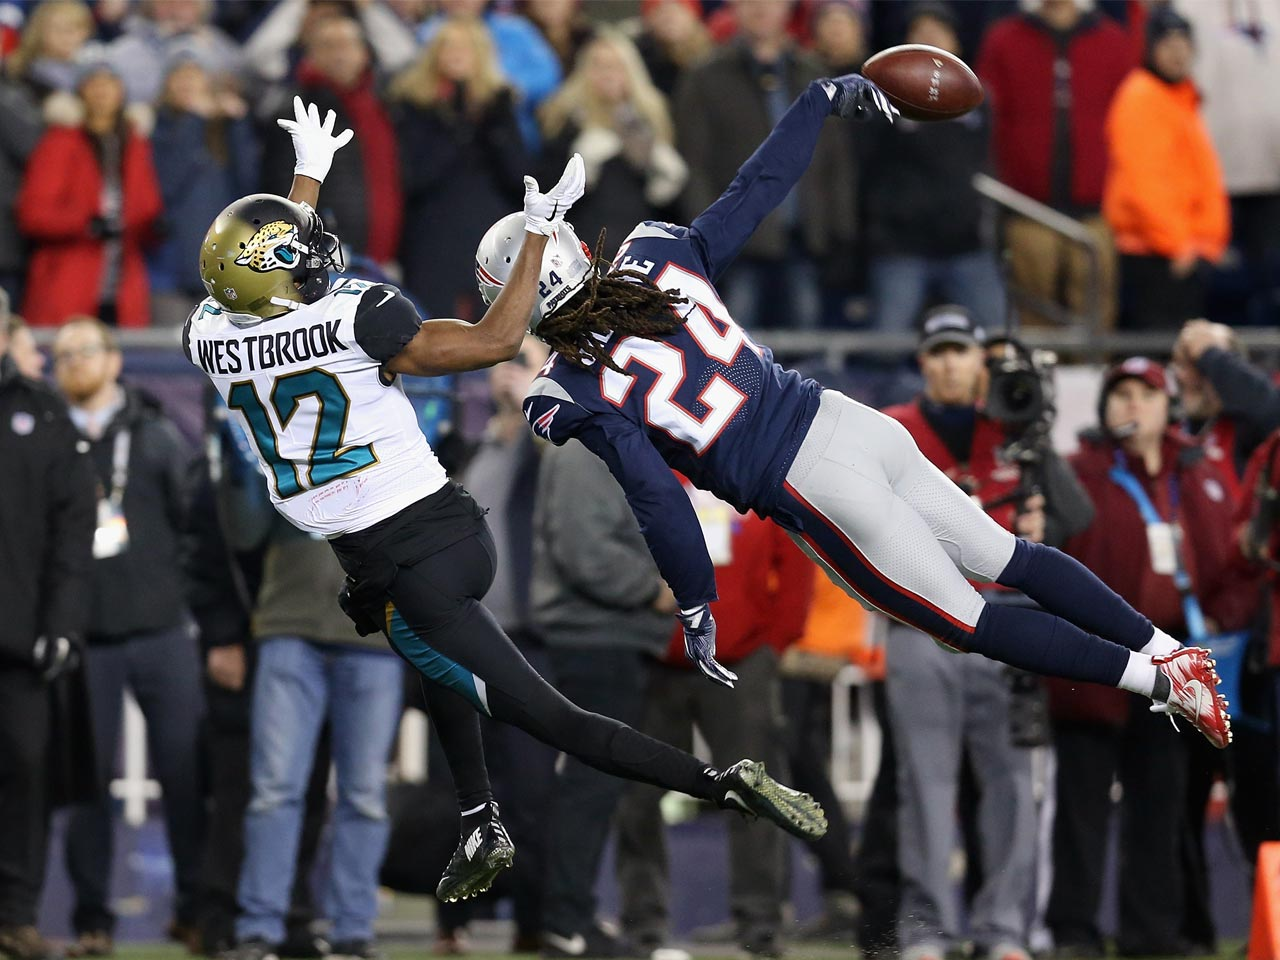 Nfl playoffs super bowl preview for patriots and eagles adam glanzman getty images 1 3 stopboris Choice Image